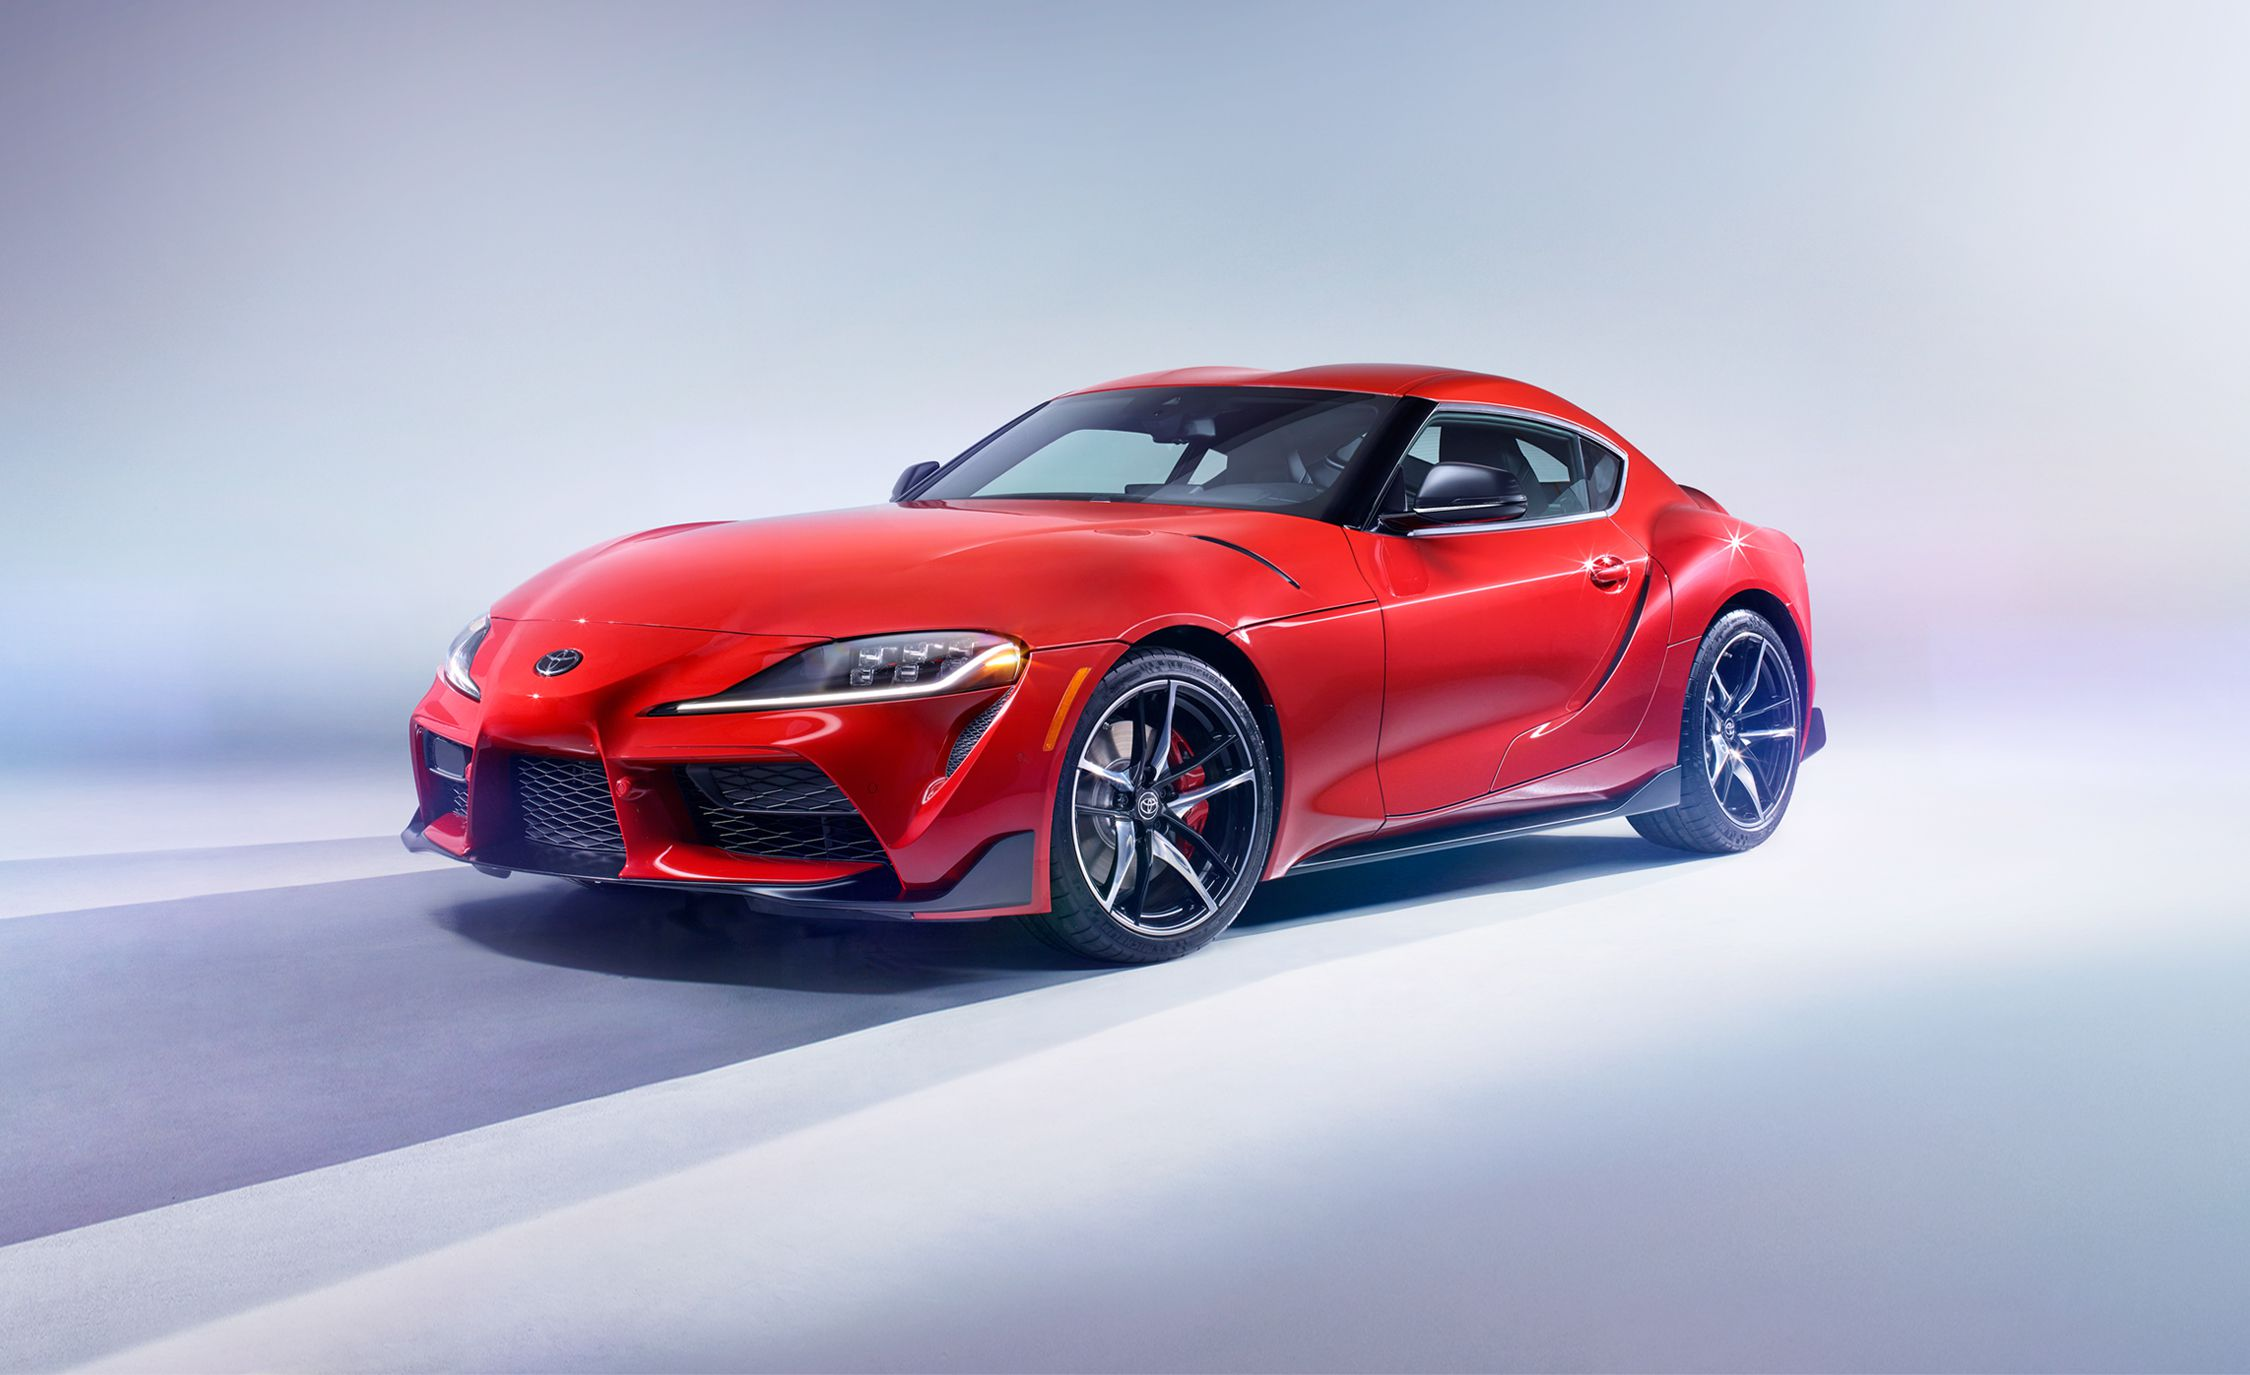 93 The Best 2020 Toyota Supra Exterior and Interior